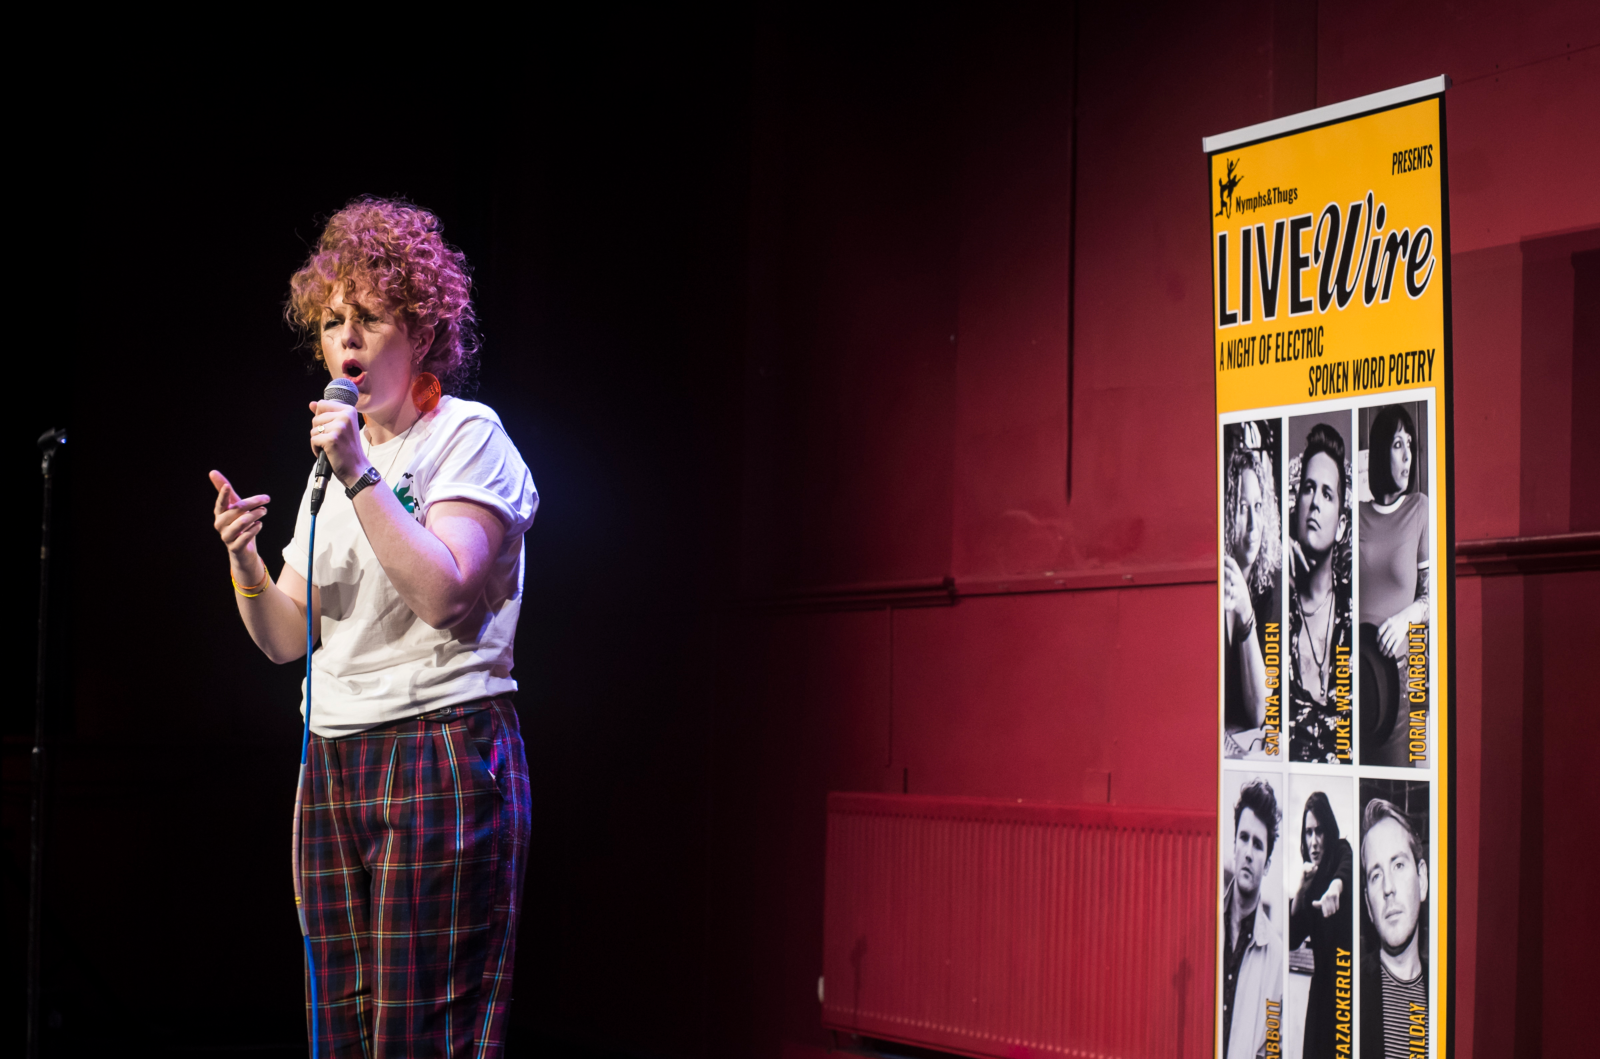 Nymphs & Thugs | LIVEwire Manchester | Kirsty Taylor